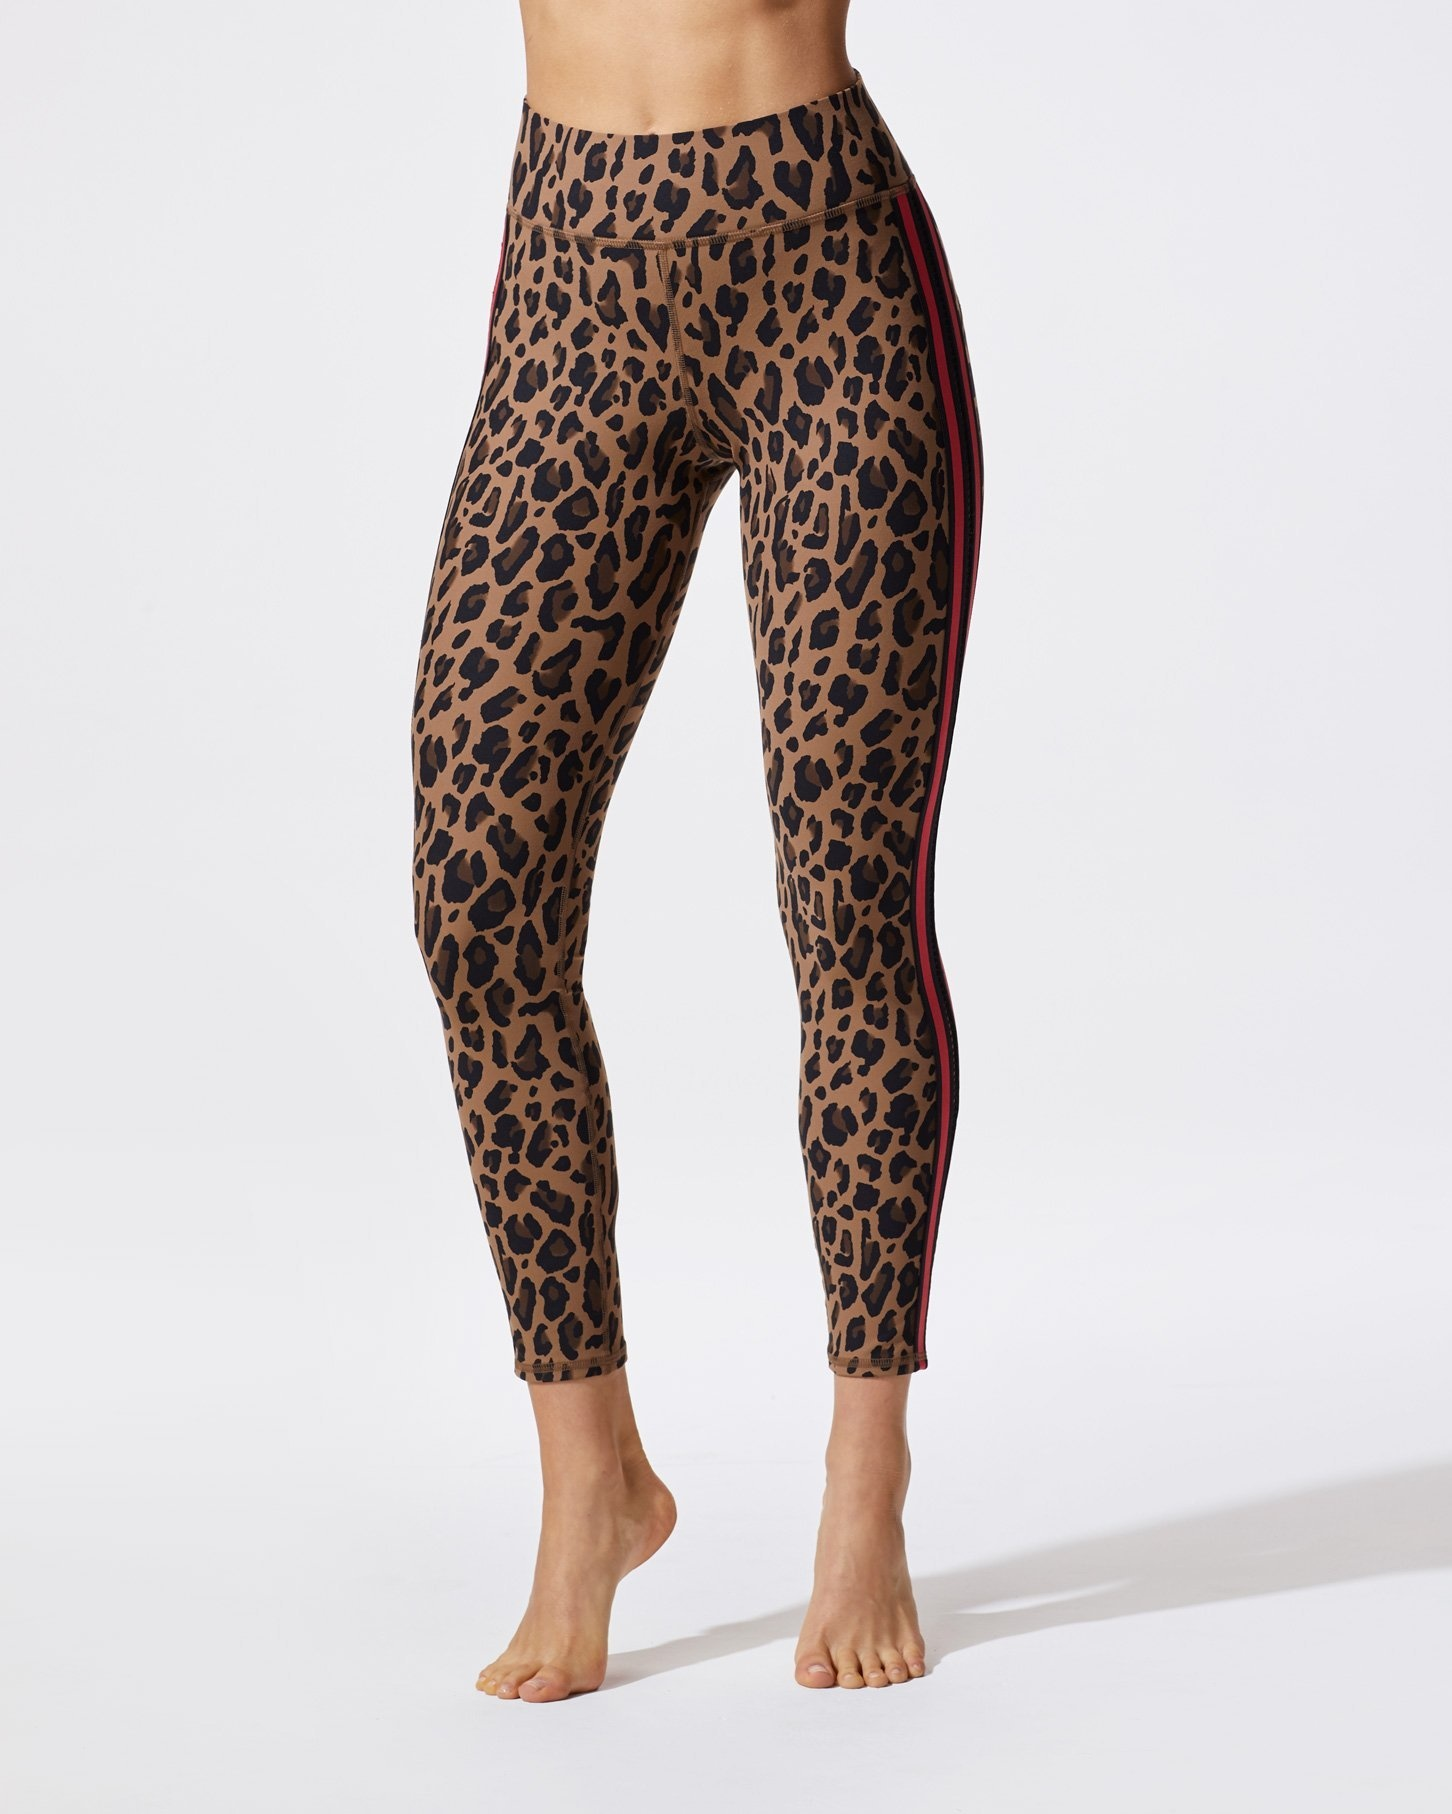 Michi Strike legging